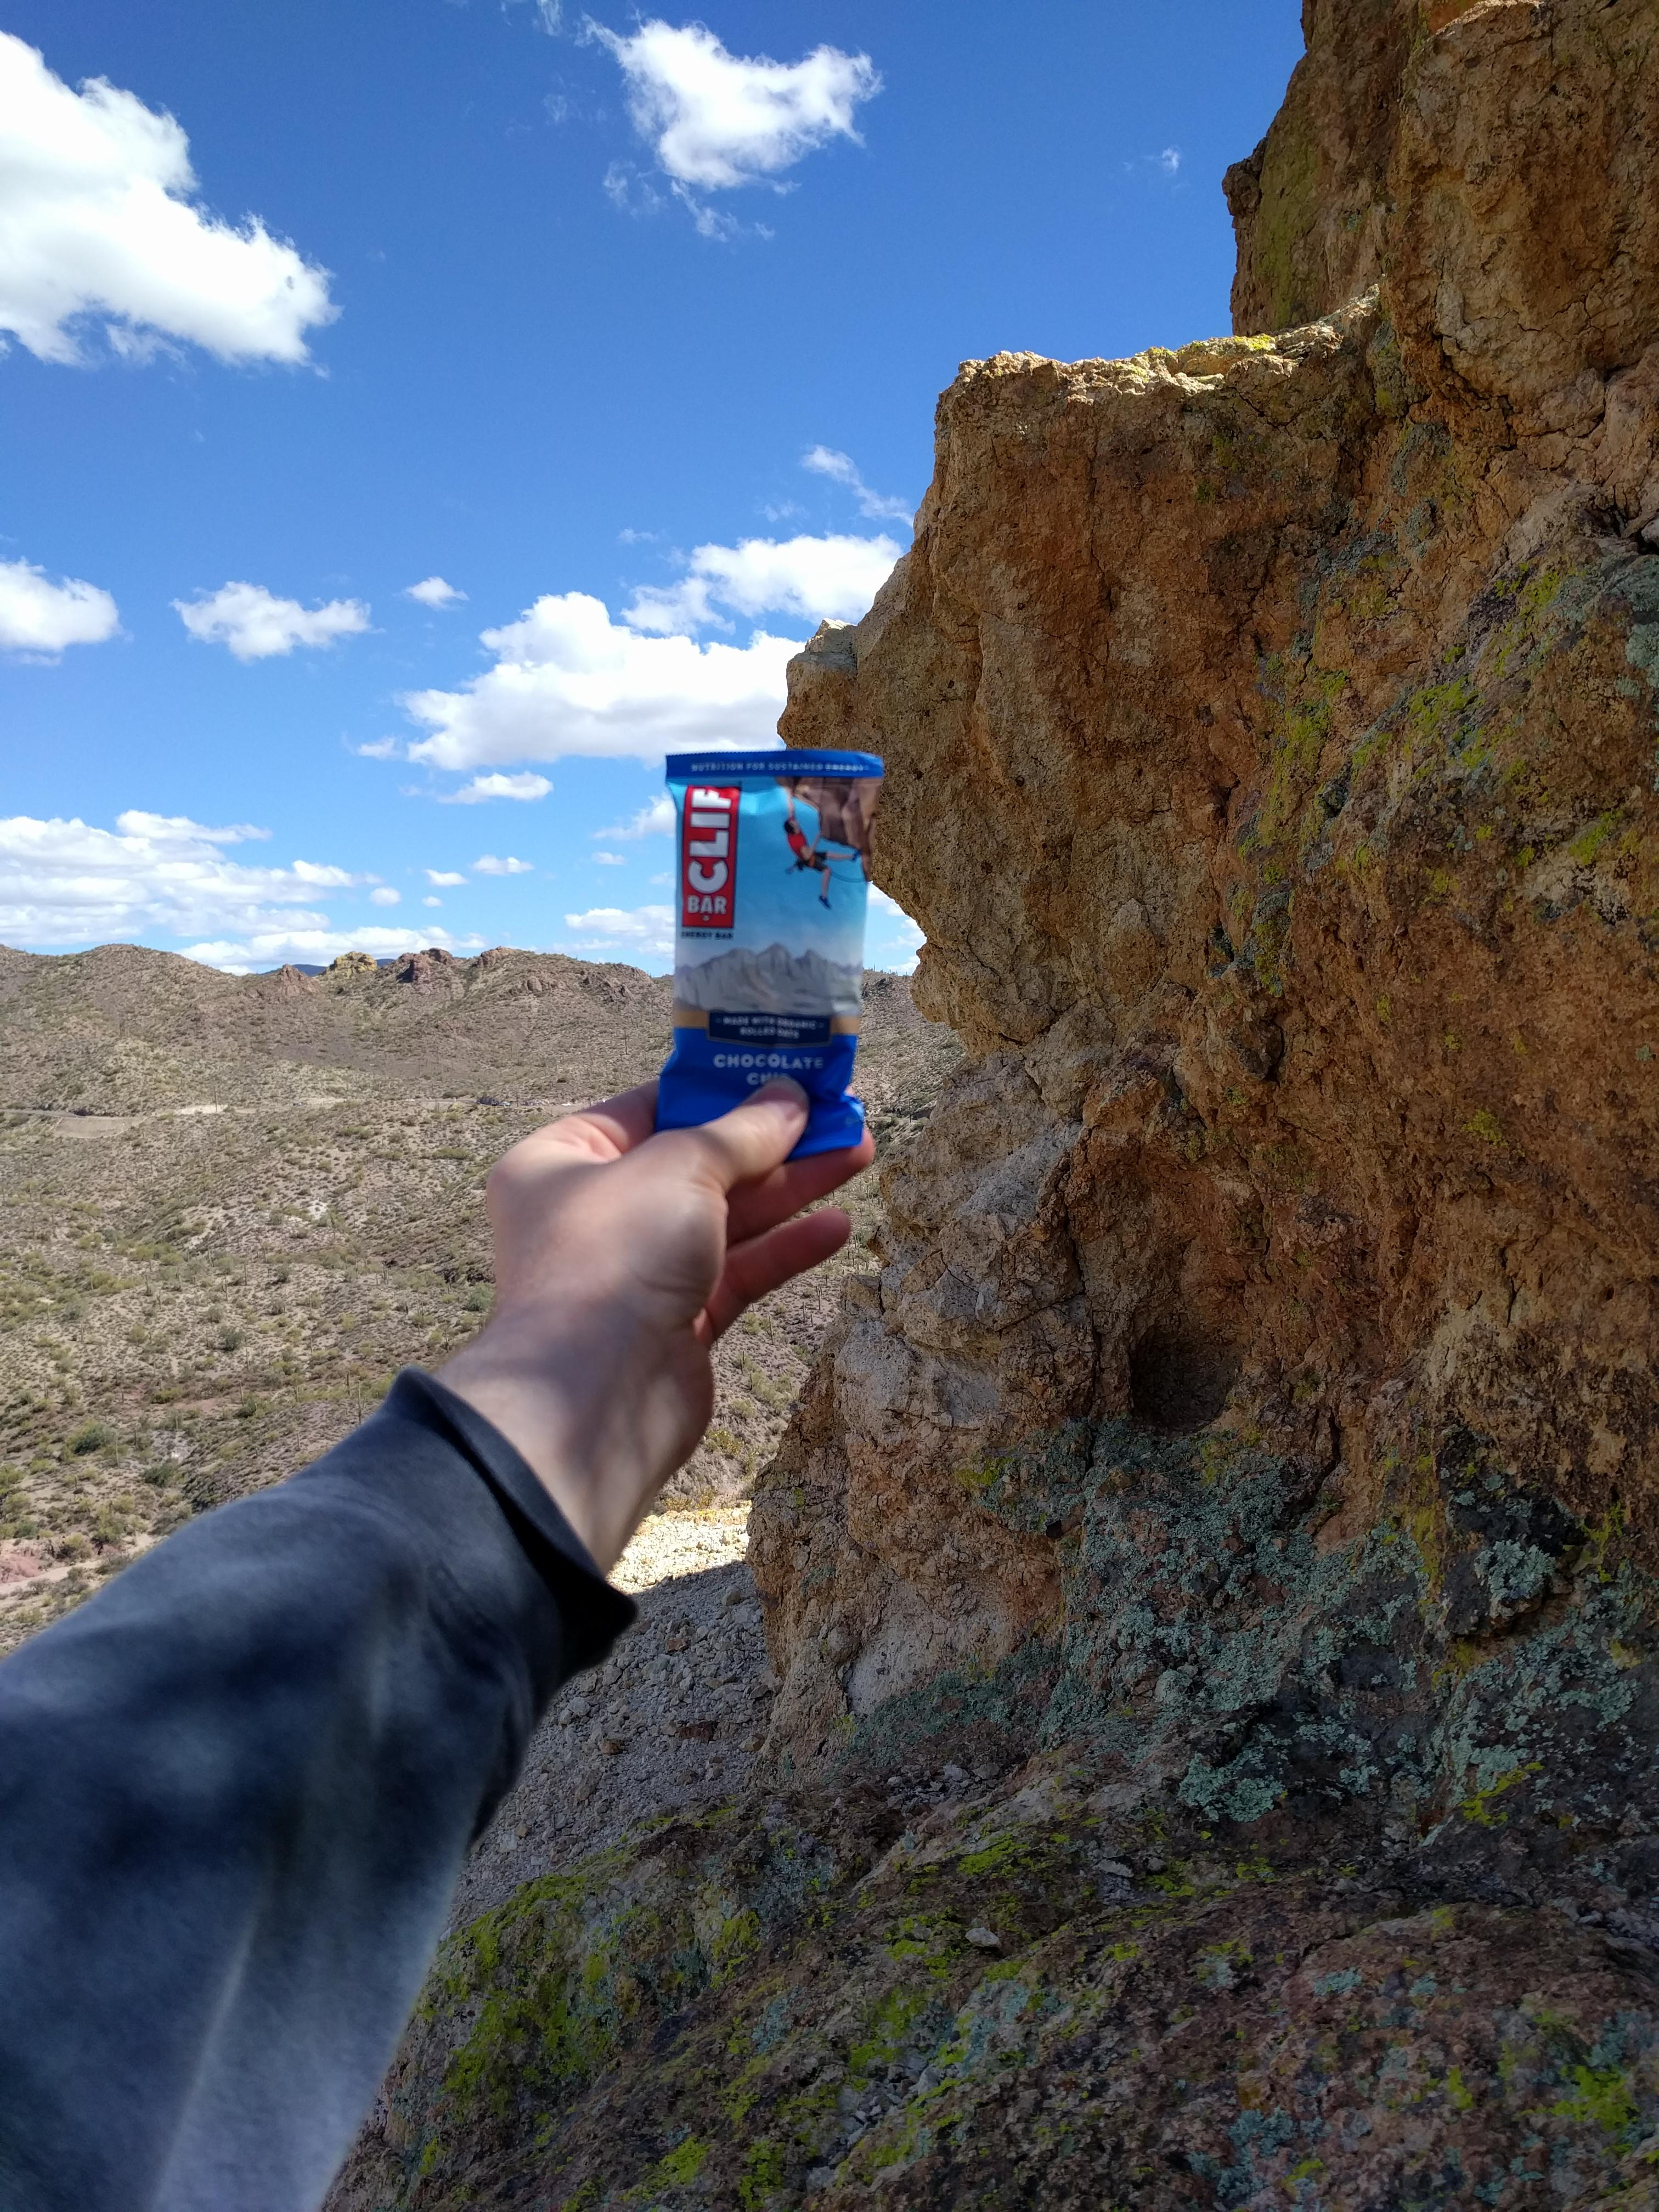 Found the cliff this Clif bar came from mildlyinteresting 3024x4032